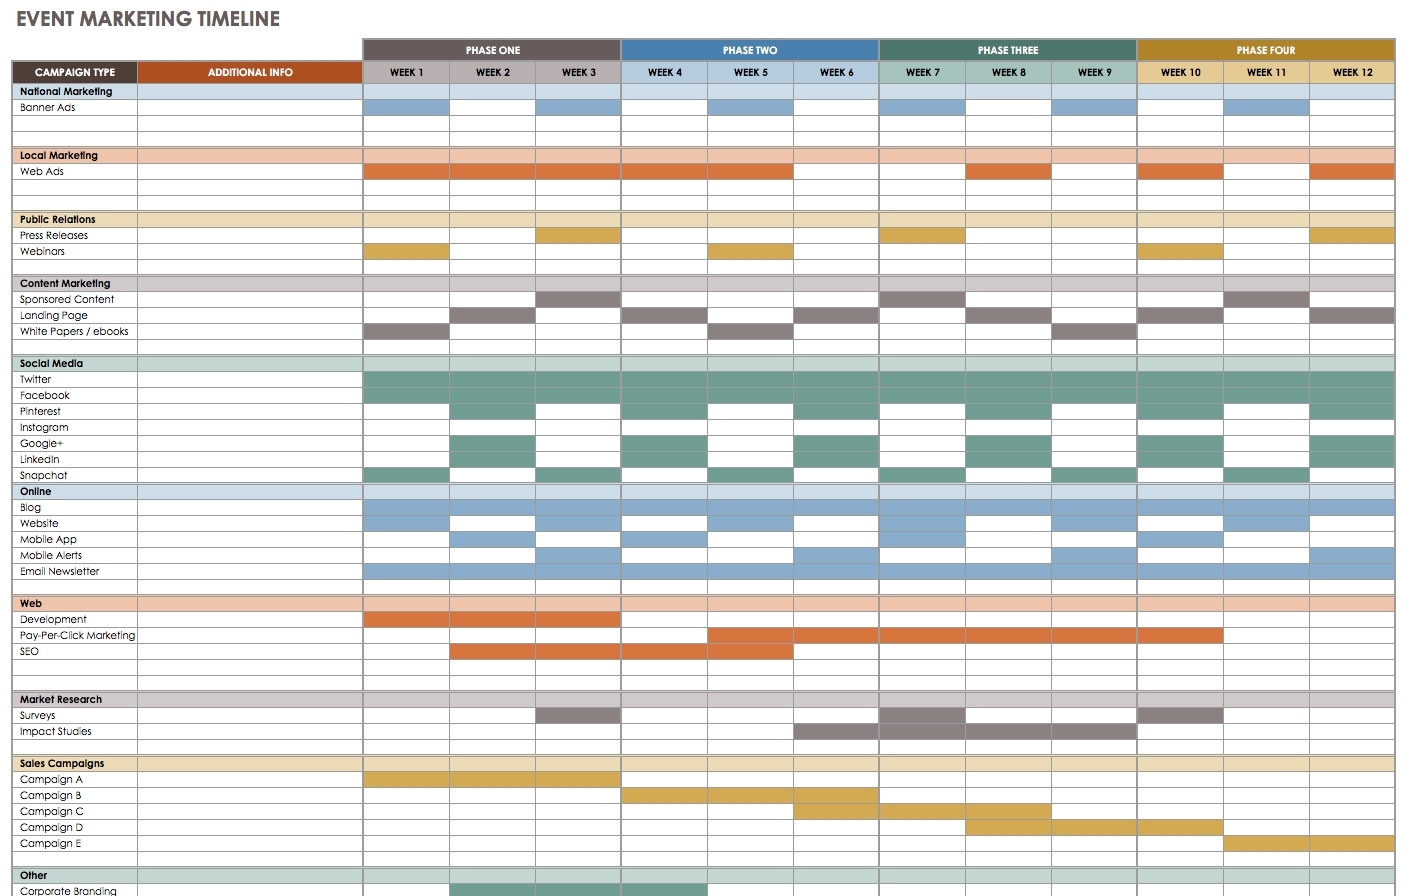 21 Free Event Planning Templates | Smartsheet with regard to Event Guest List Template Excel